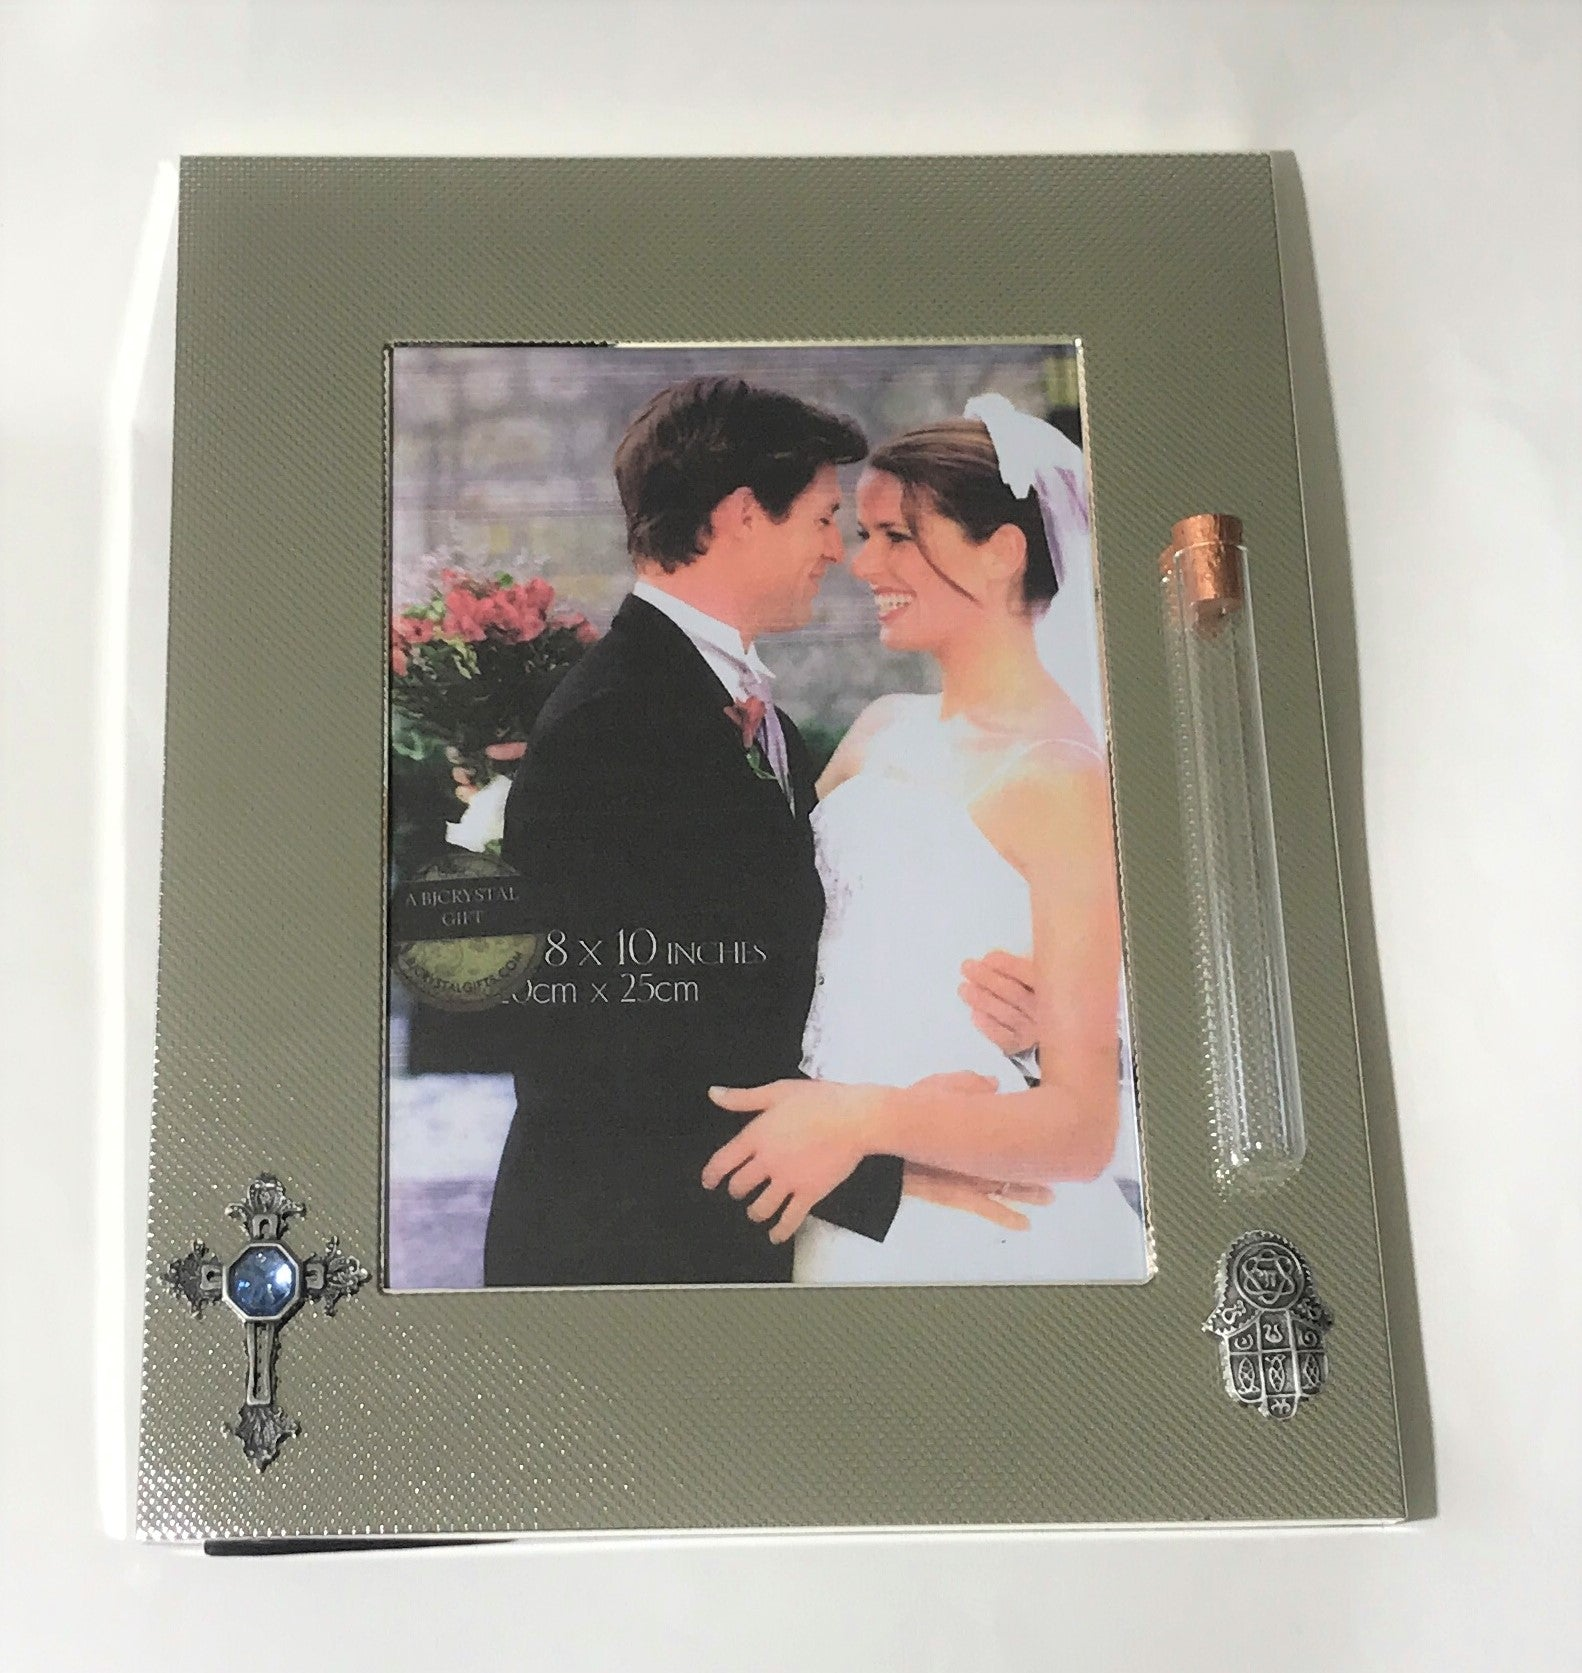 Interfaith Wedding Picture Frame - Frame With Cross And Chamsa - Tube For Shards Of Glass Broken At Wedding Ceremony - 8x10